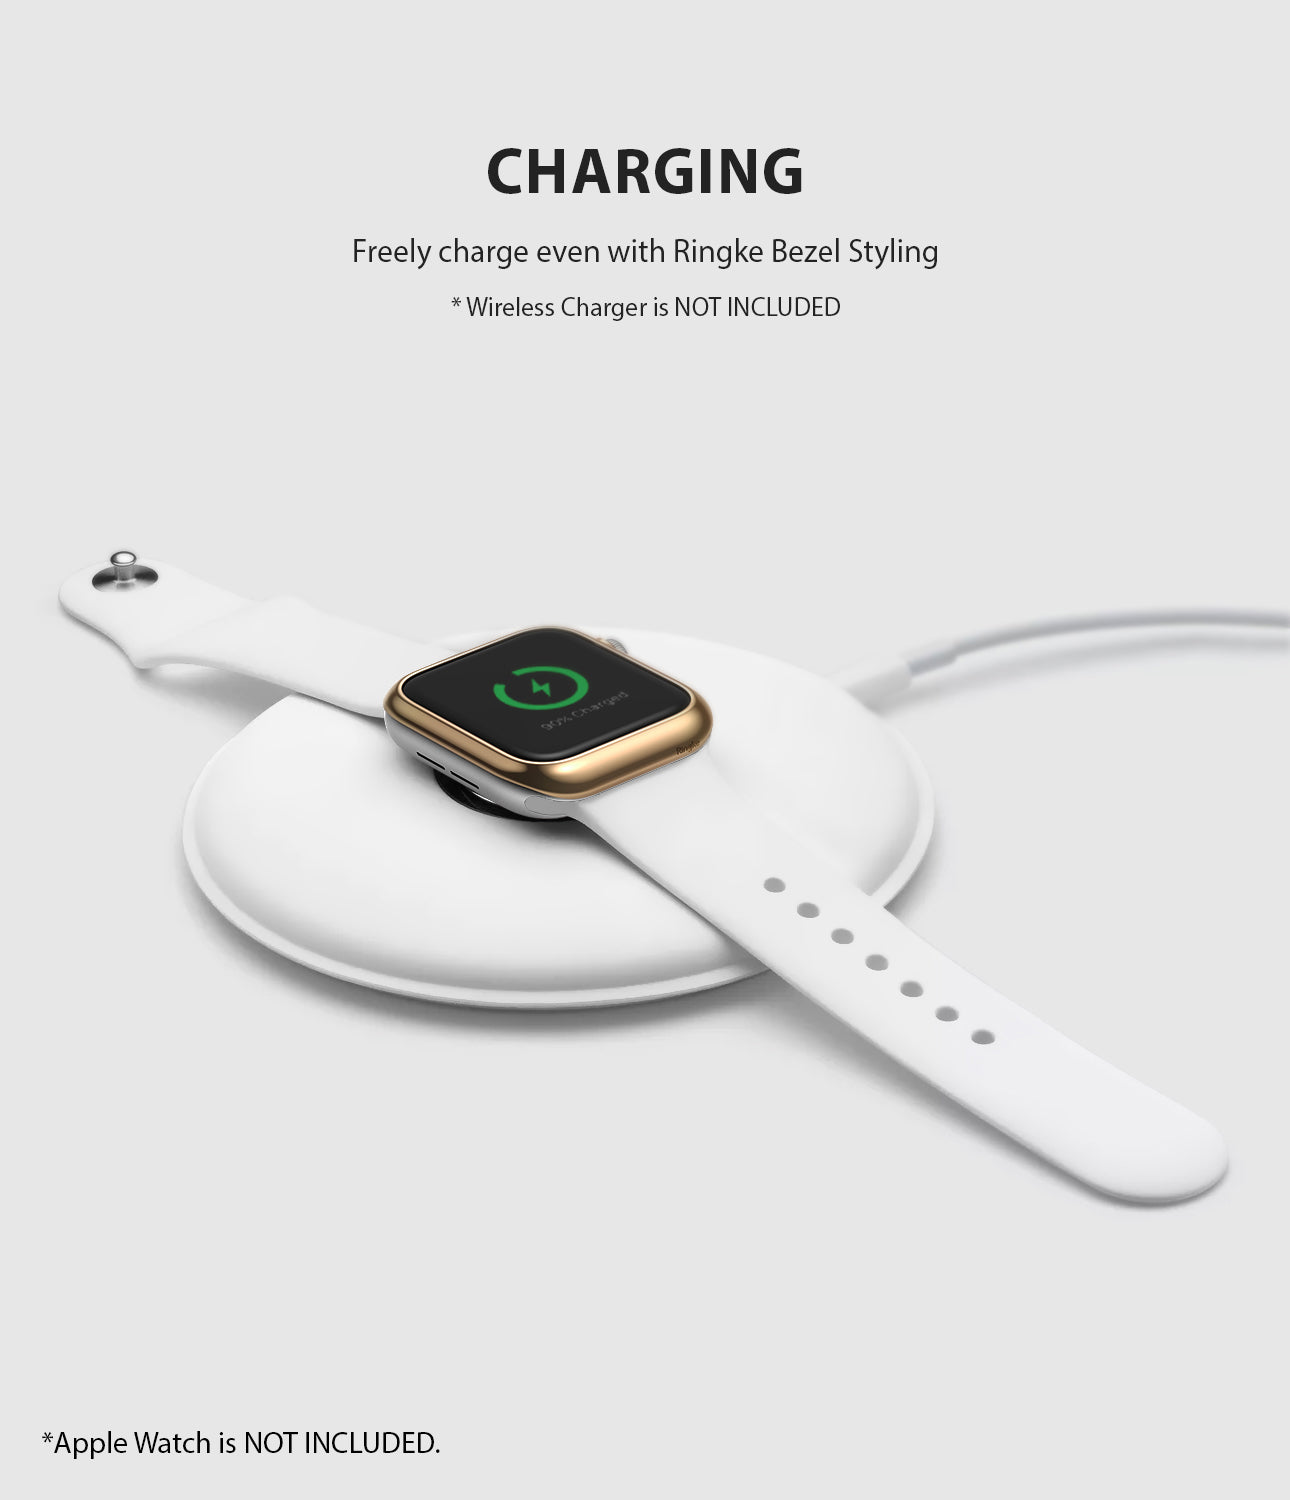 apple watch 3 2 1 42mm case ringke bezel styling stainless steel frame cover 42-05 wireless charging